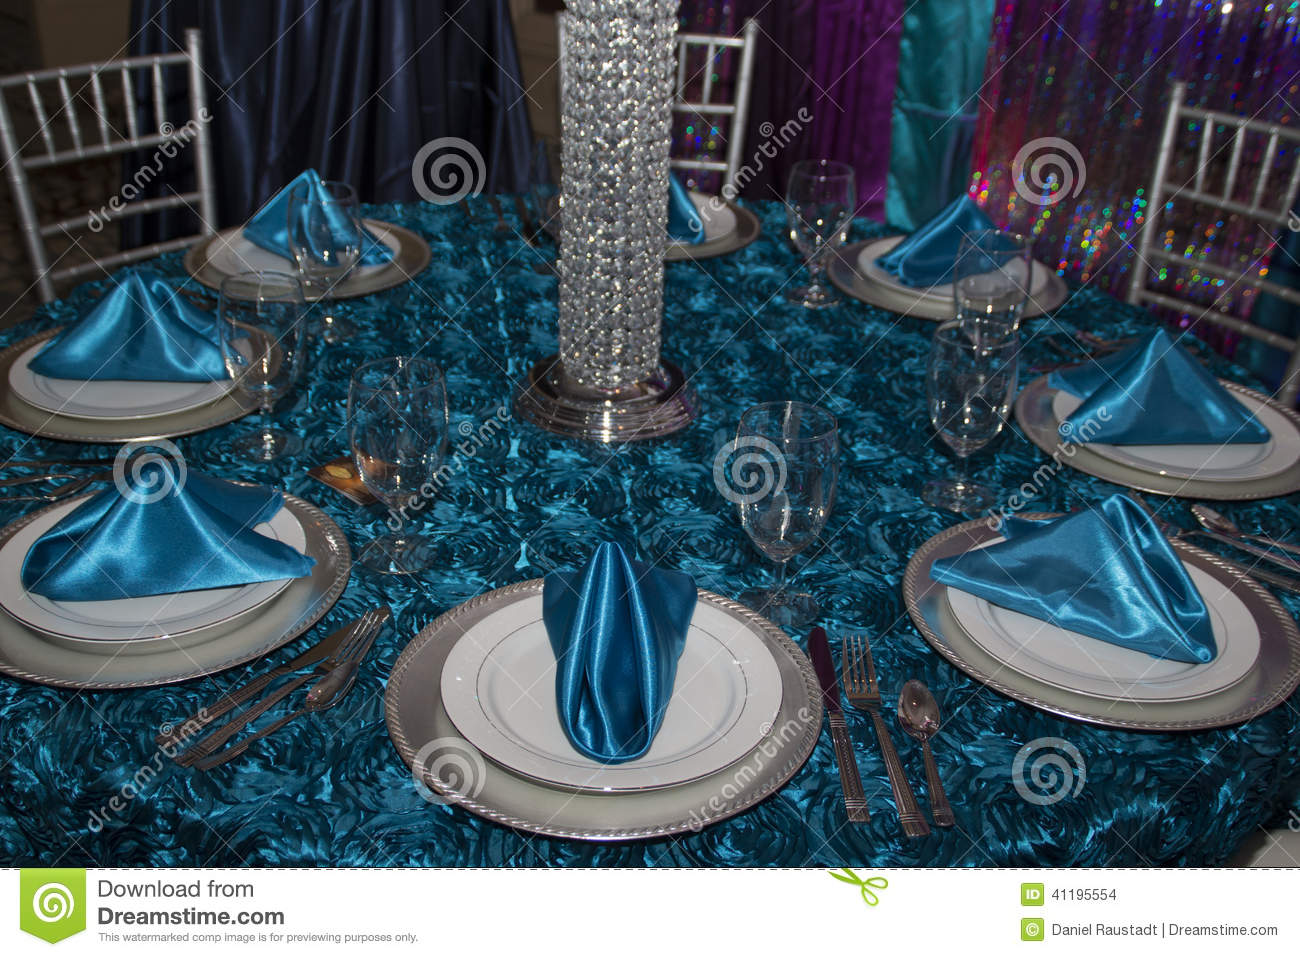 Elegant Modern Table Place Setting Stock Photo  Image 41195554